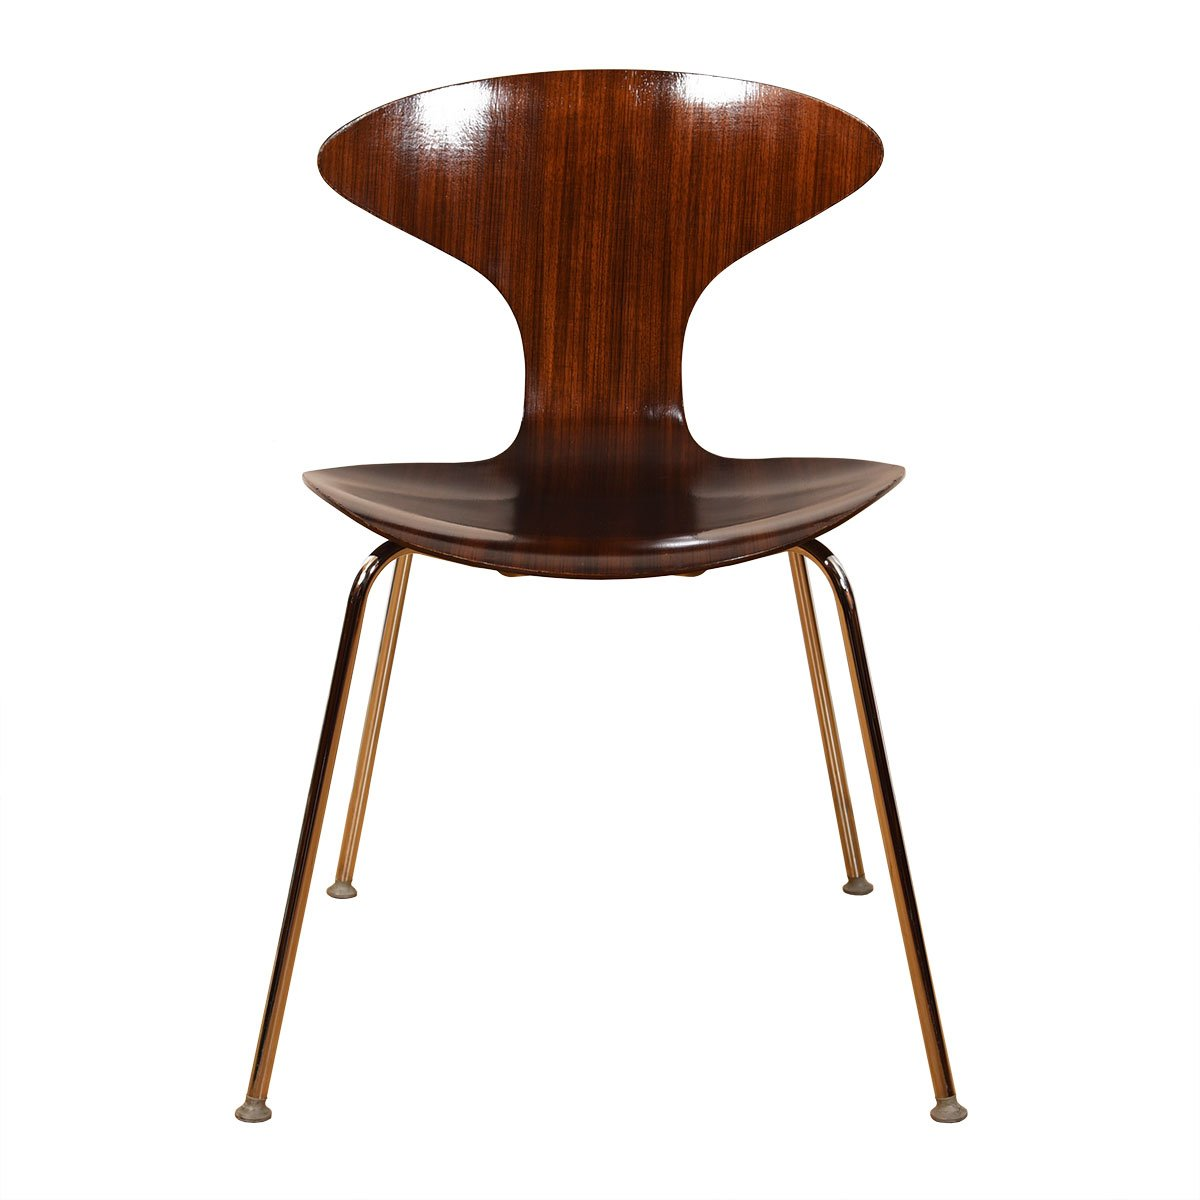 Cherner Style Walnut Bentwood Accent Chair